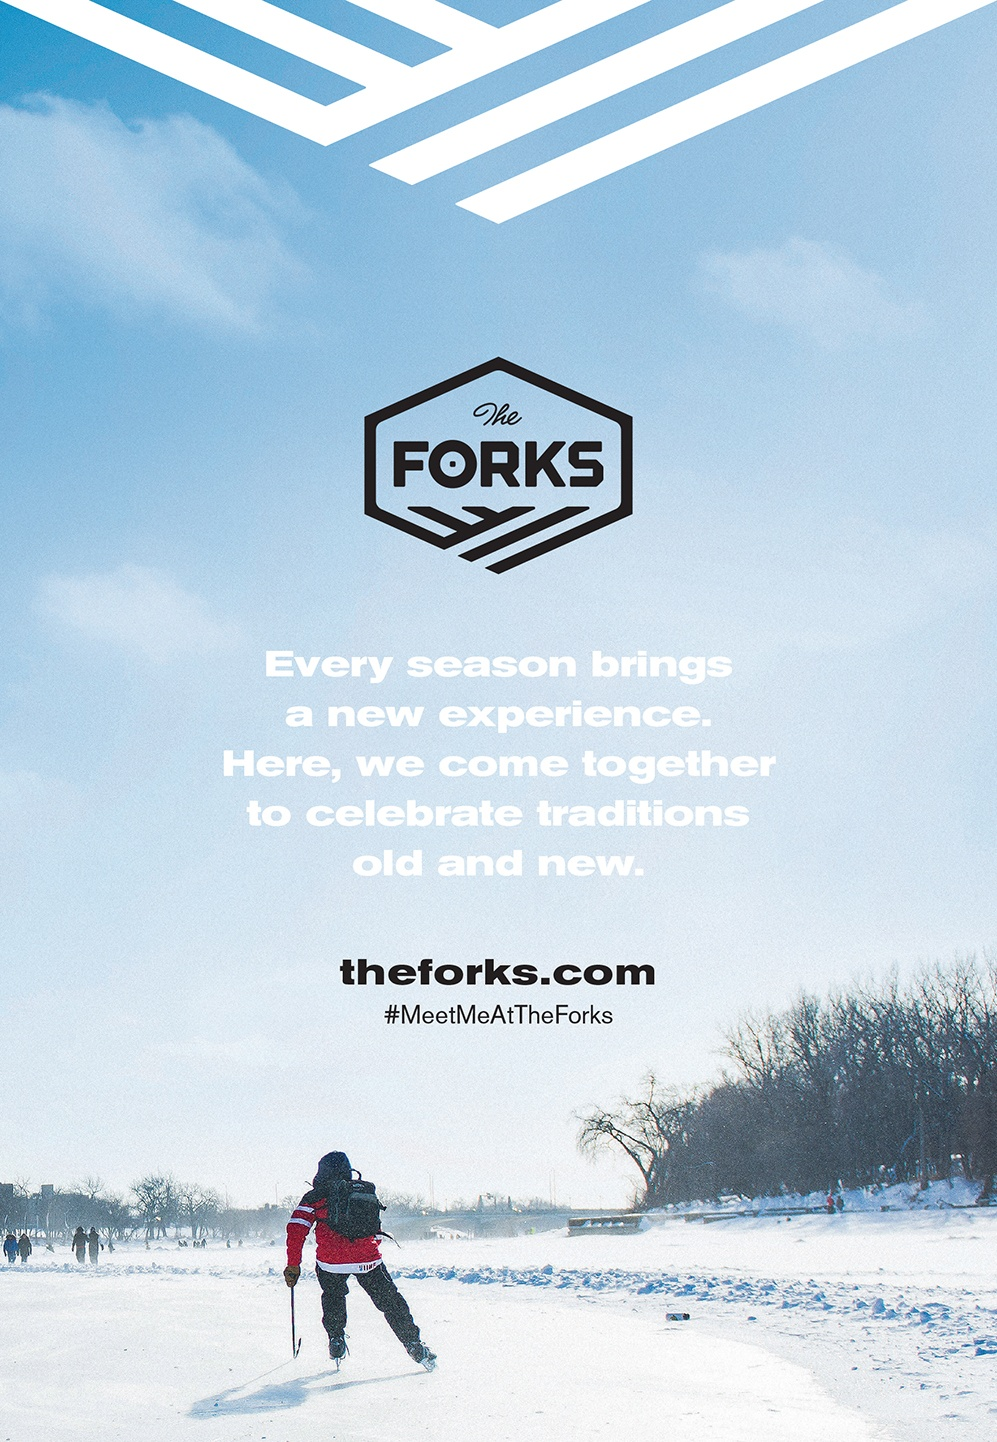 The Forks market advertisement